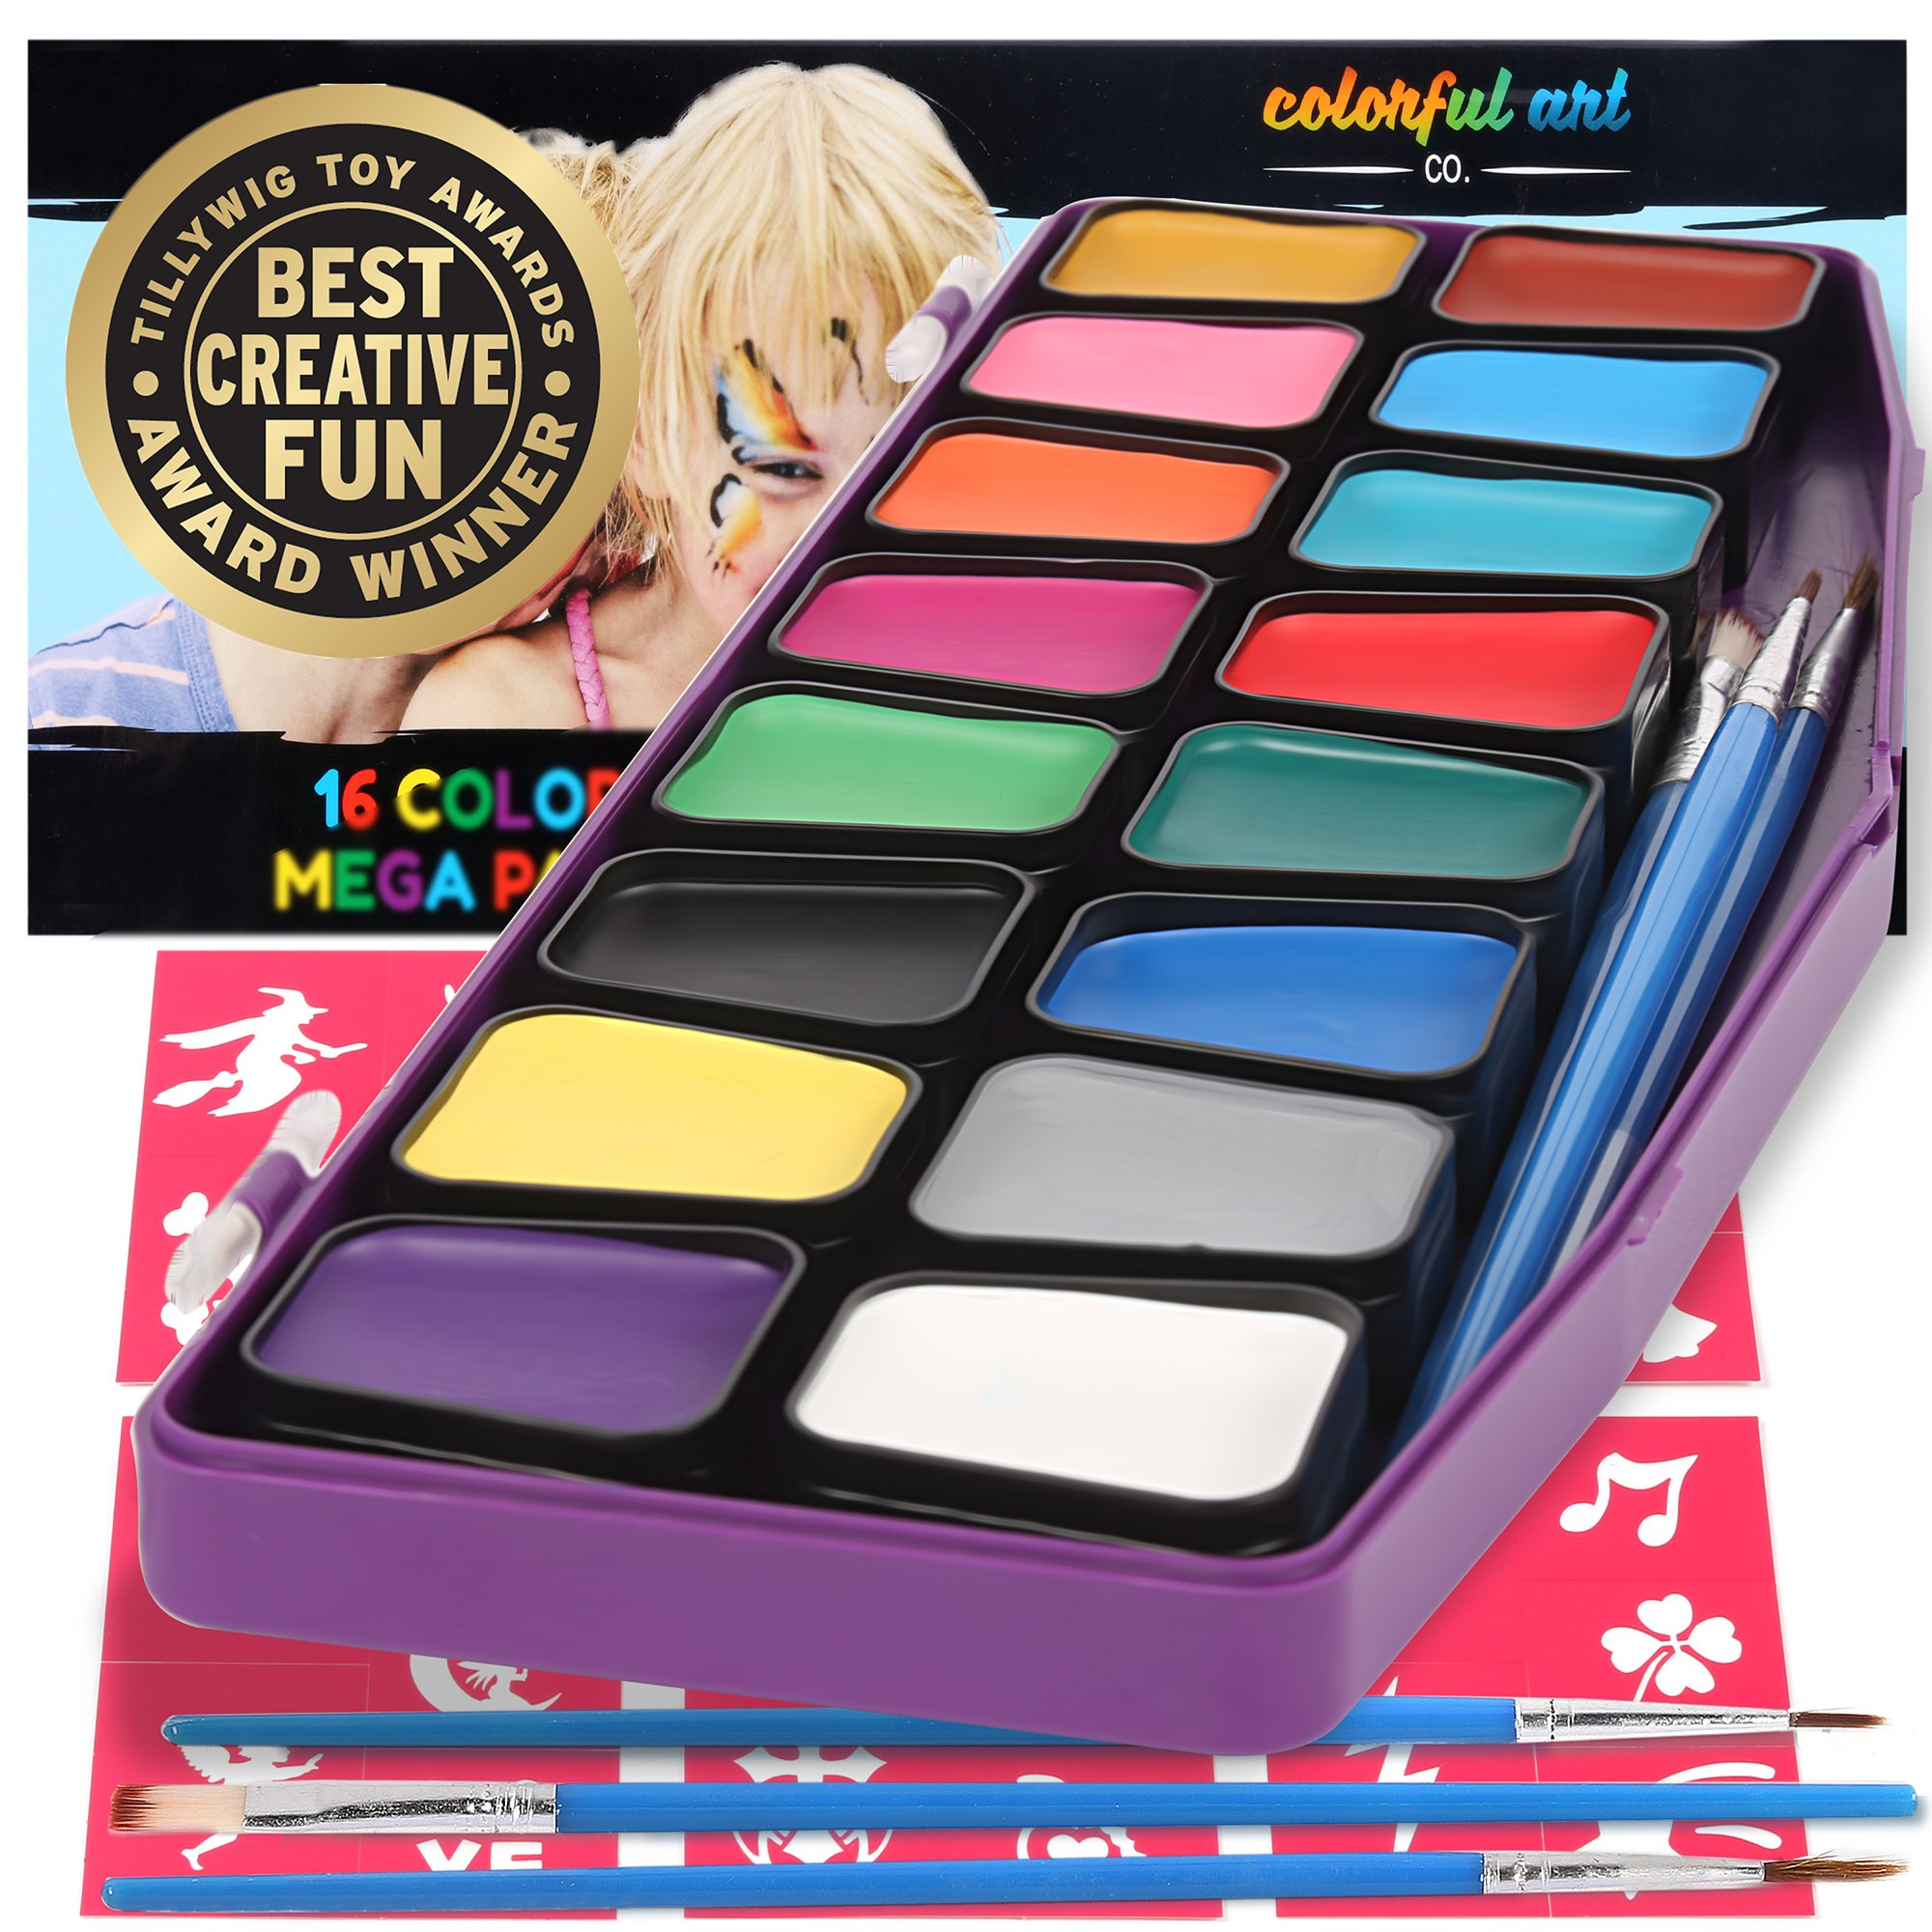 Award Winning Face Paint Kit For Kids | Professional MEGA16 Color Palette Best Face Painting Party Kits and Cosplay Body Paint Set | 30 Stencils | 3 Brushes | Non-Toxic, Hypoallergenic, FDA Compliant by Colorful Art Co.